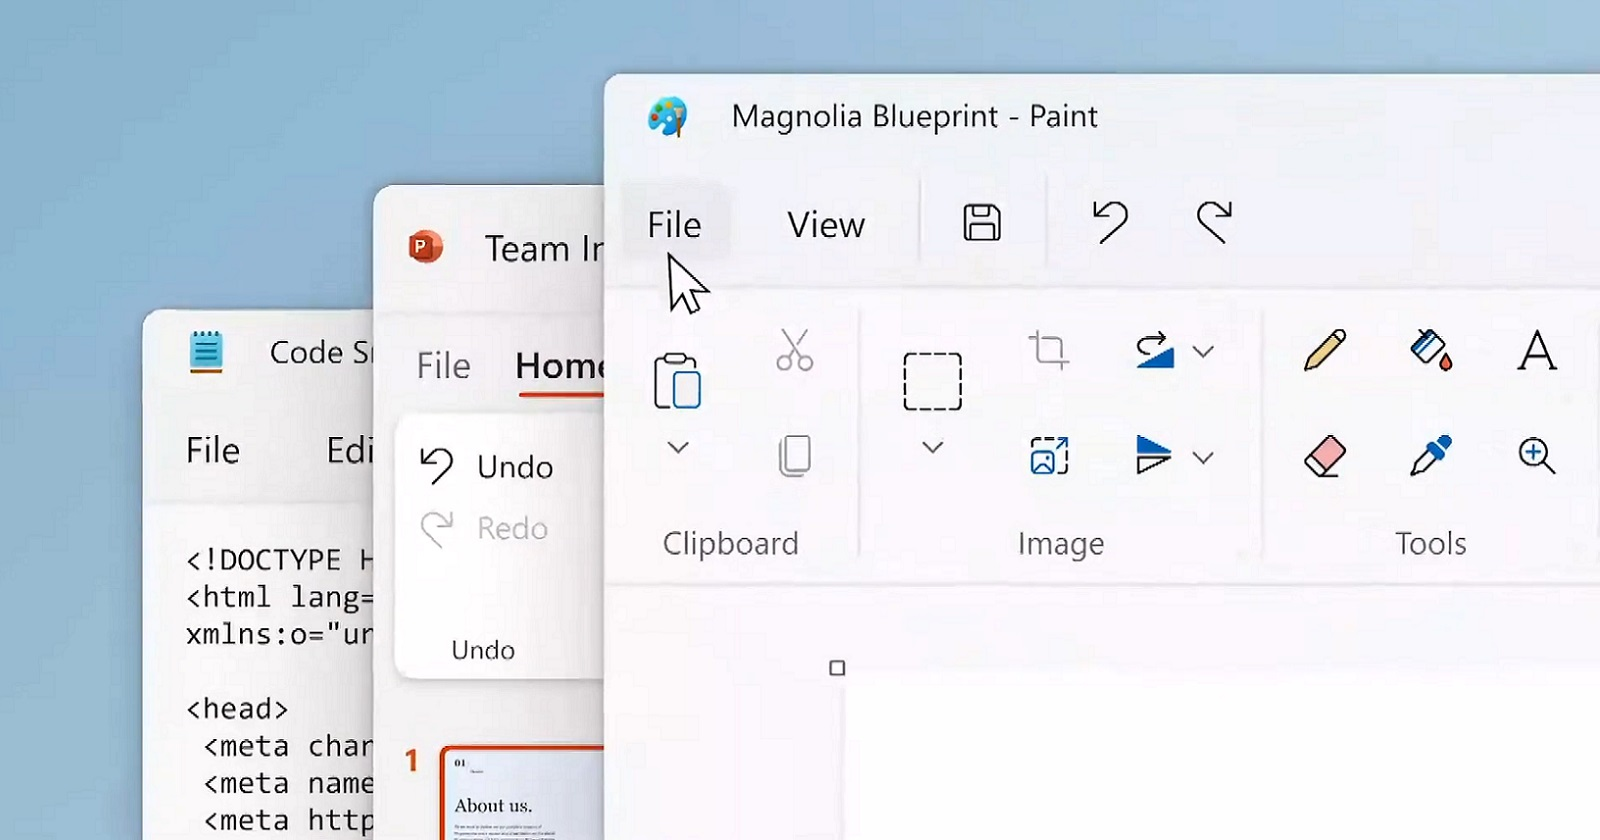 Paint, PowerPoint, and Notepad